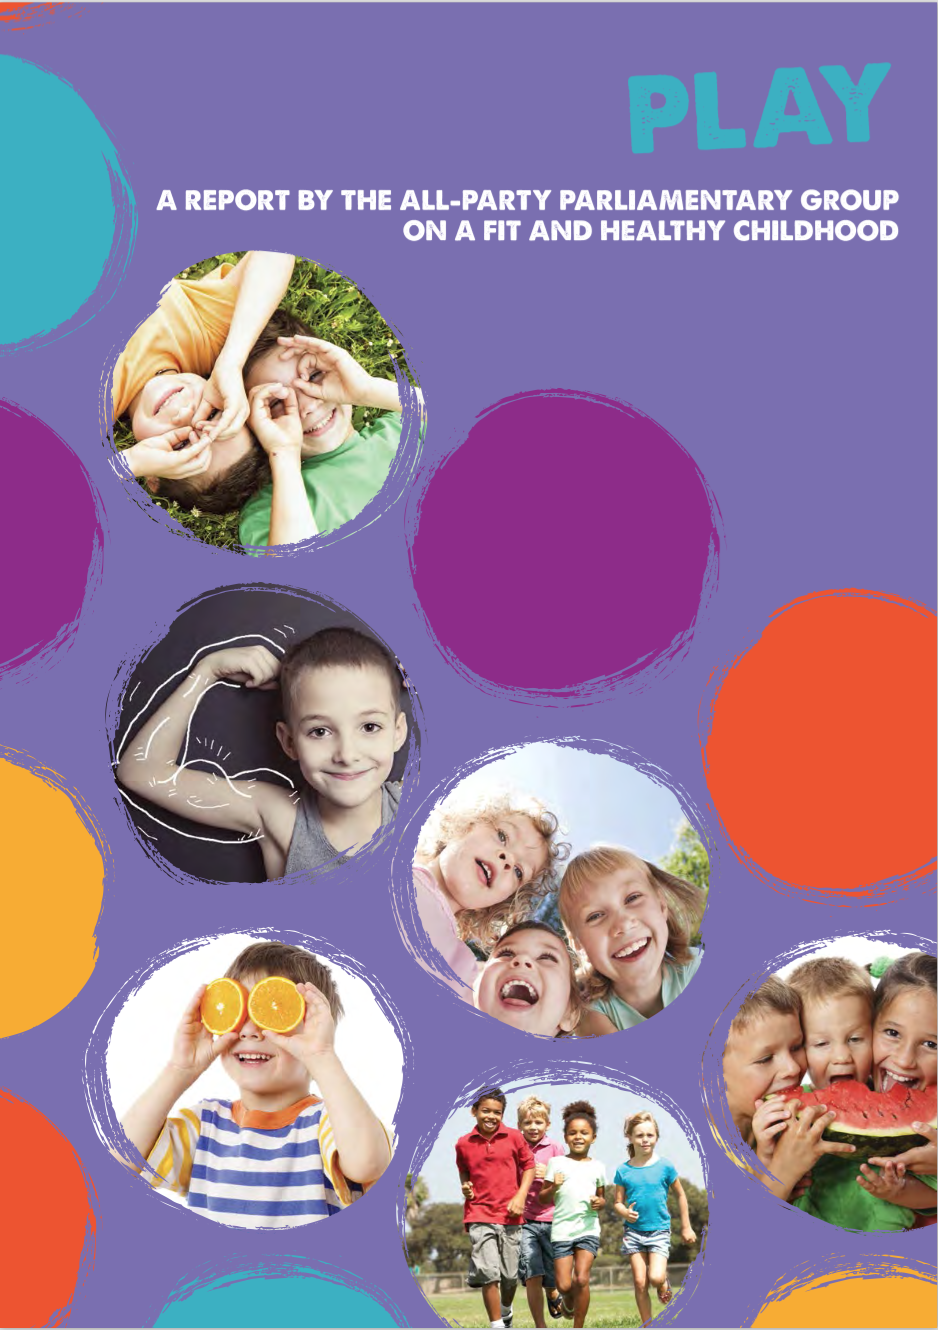 Play - A report by the all-party parliamentary group on a fit and healthy childhood